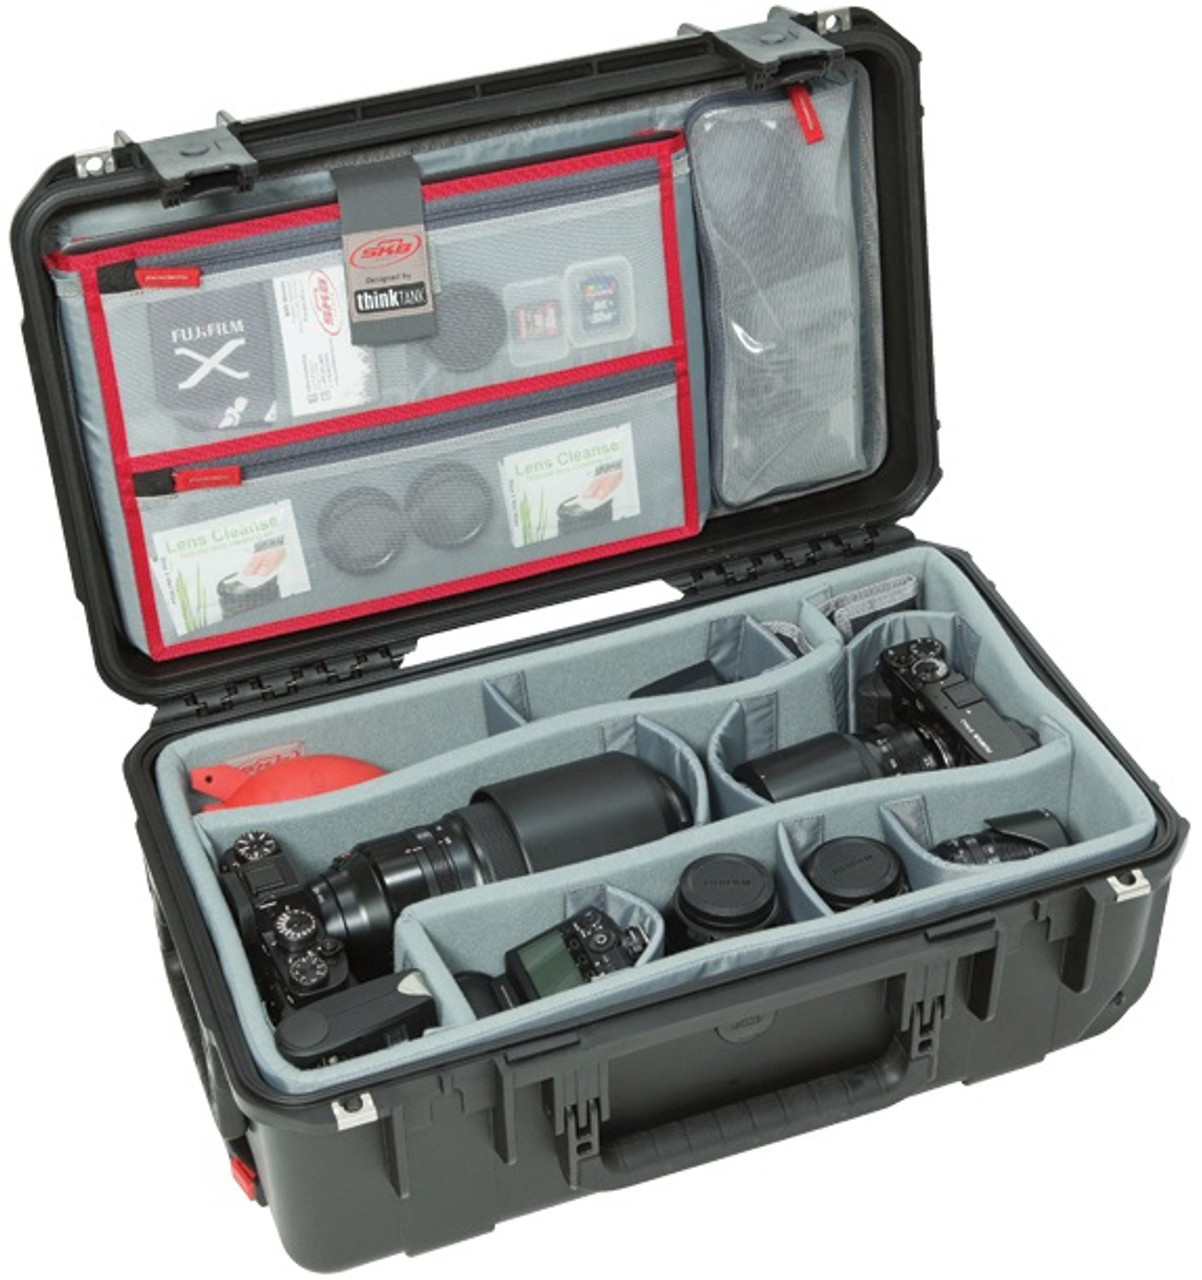 SKB iSeries 2011-7 Case with Think Tank Designed Photo Dividers and Lid Organizer